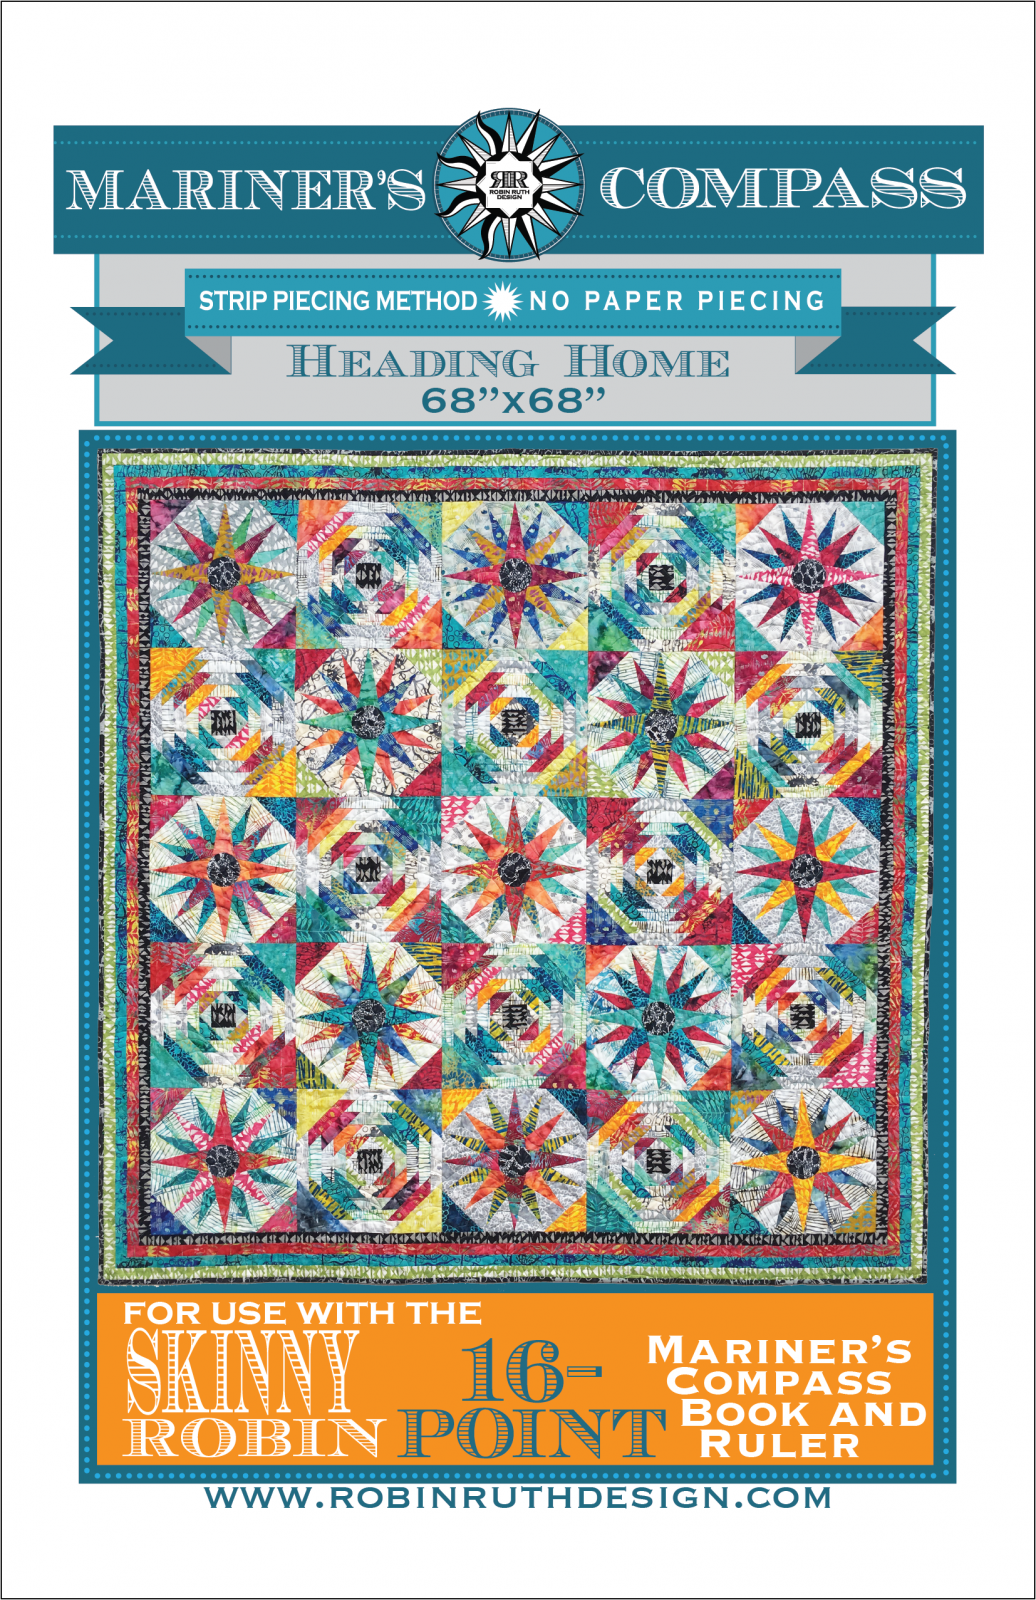 Heading Home Pattern by Robin Ruth Design